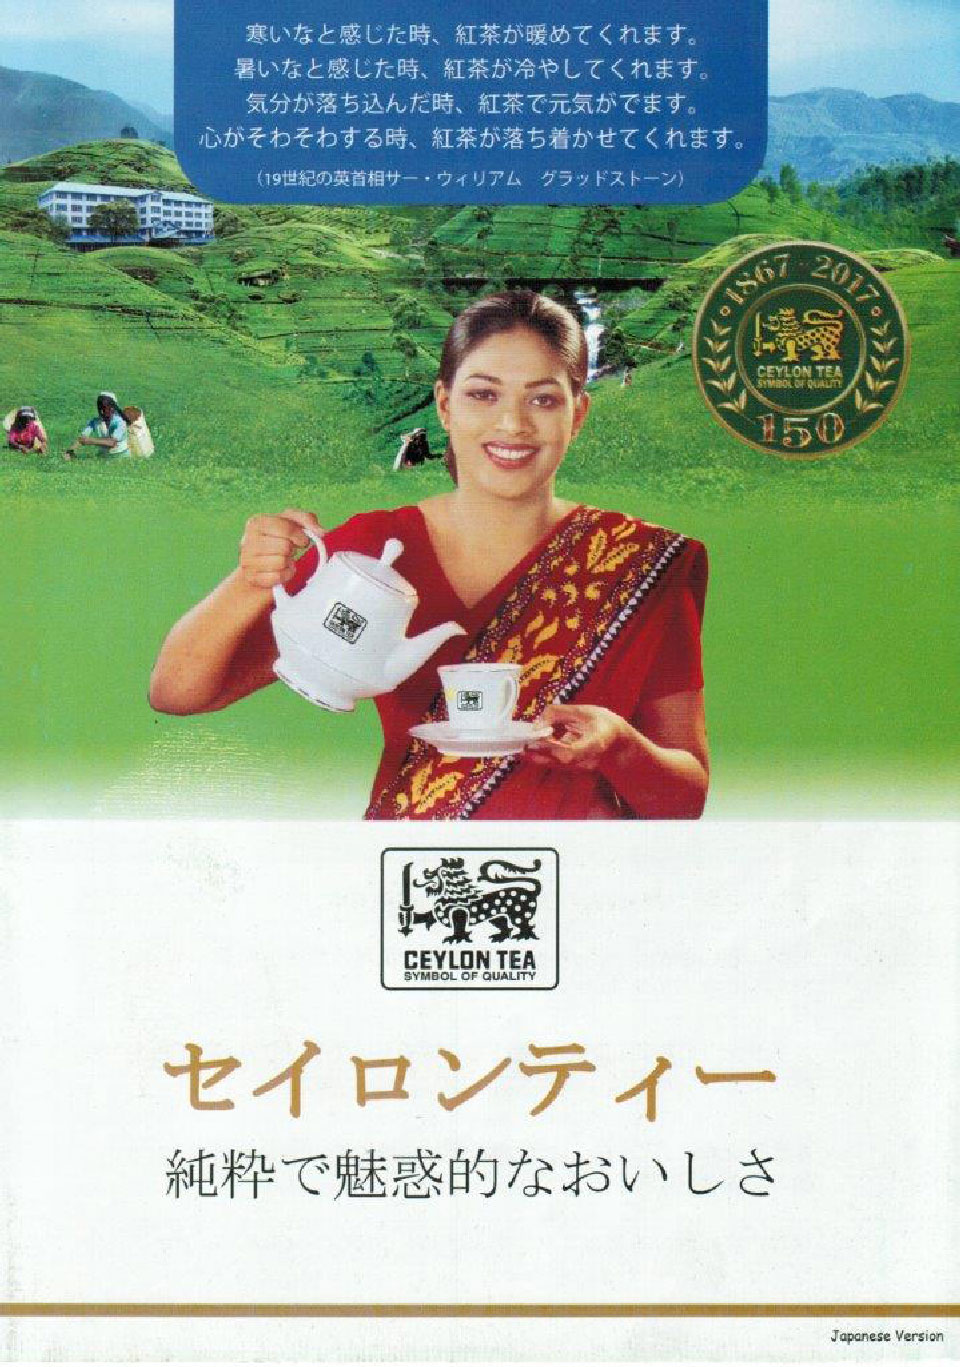 Ceylon Tea at Sri Lanka festival Japan